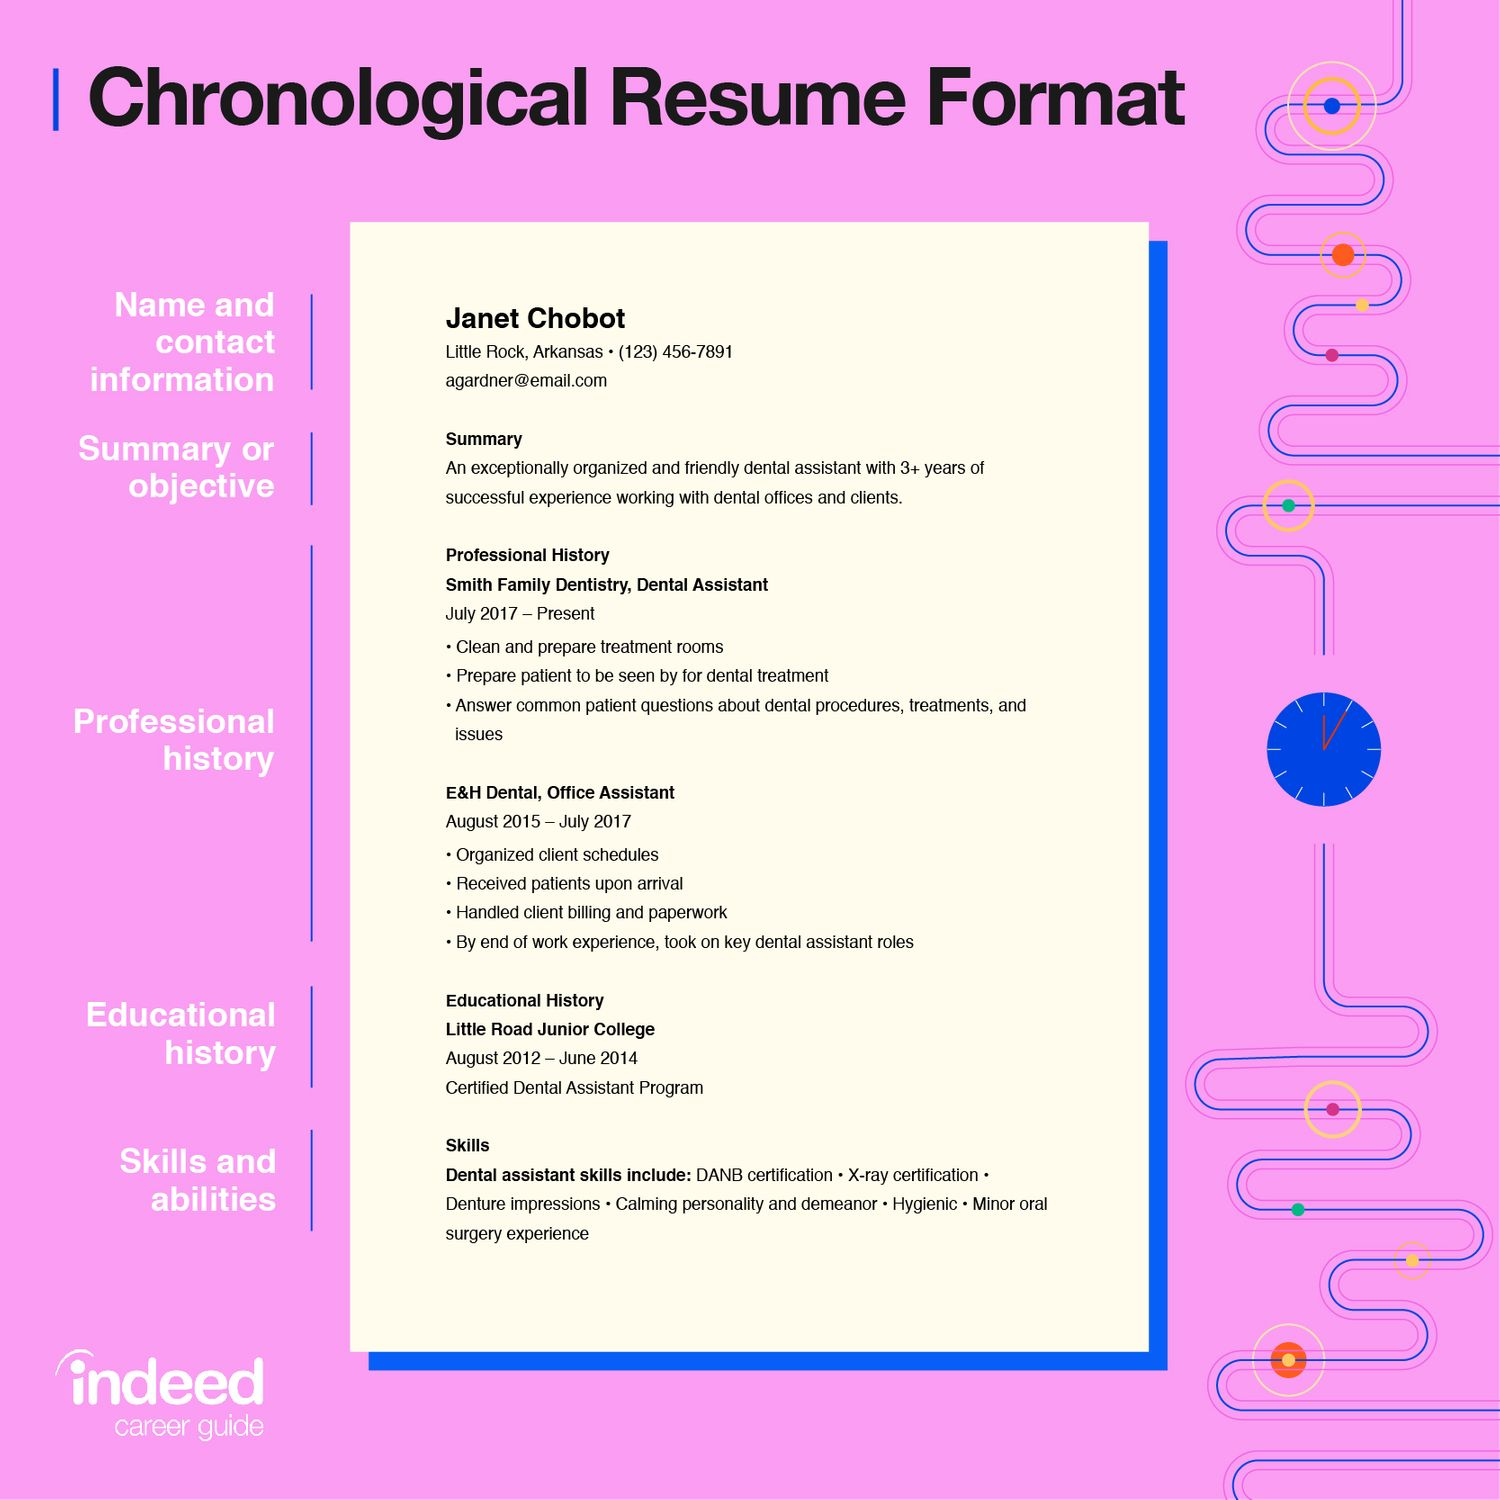 resume format guide tips and examples of the best formats indeed resized sample word file Resume Best Resume Format Examples